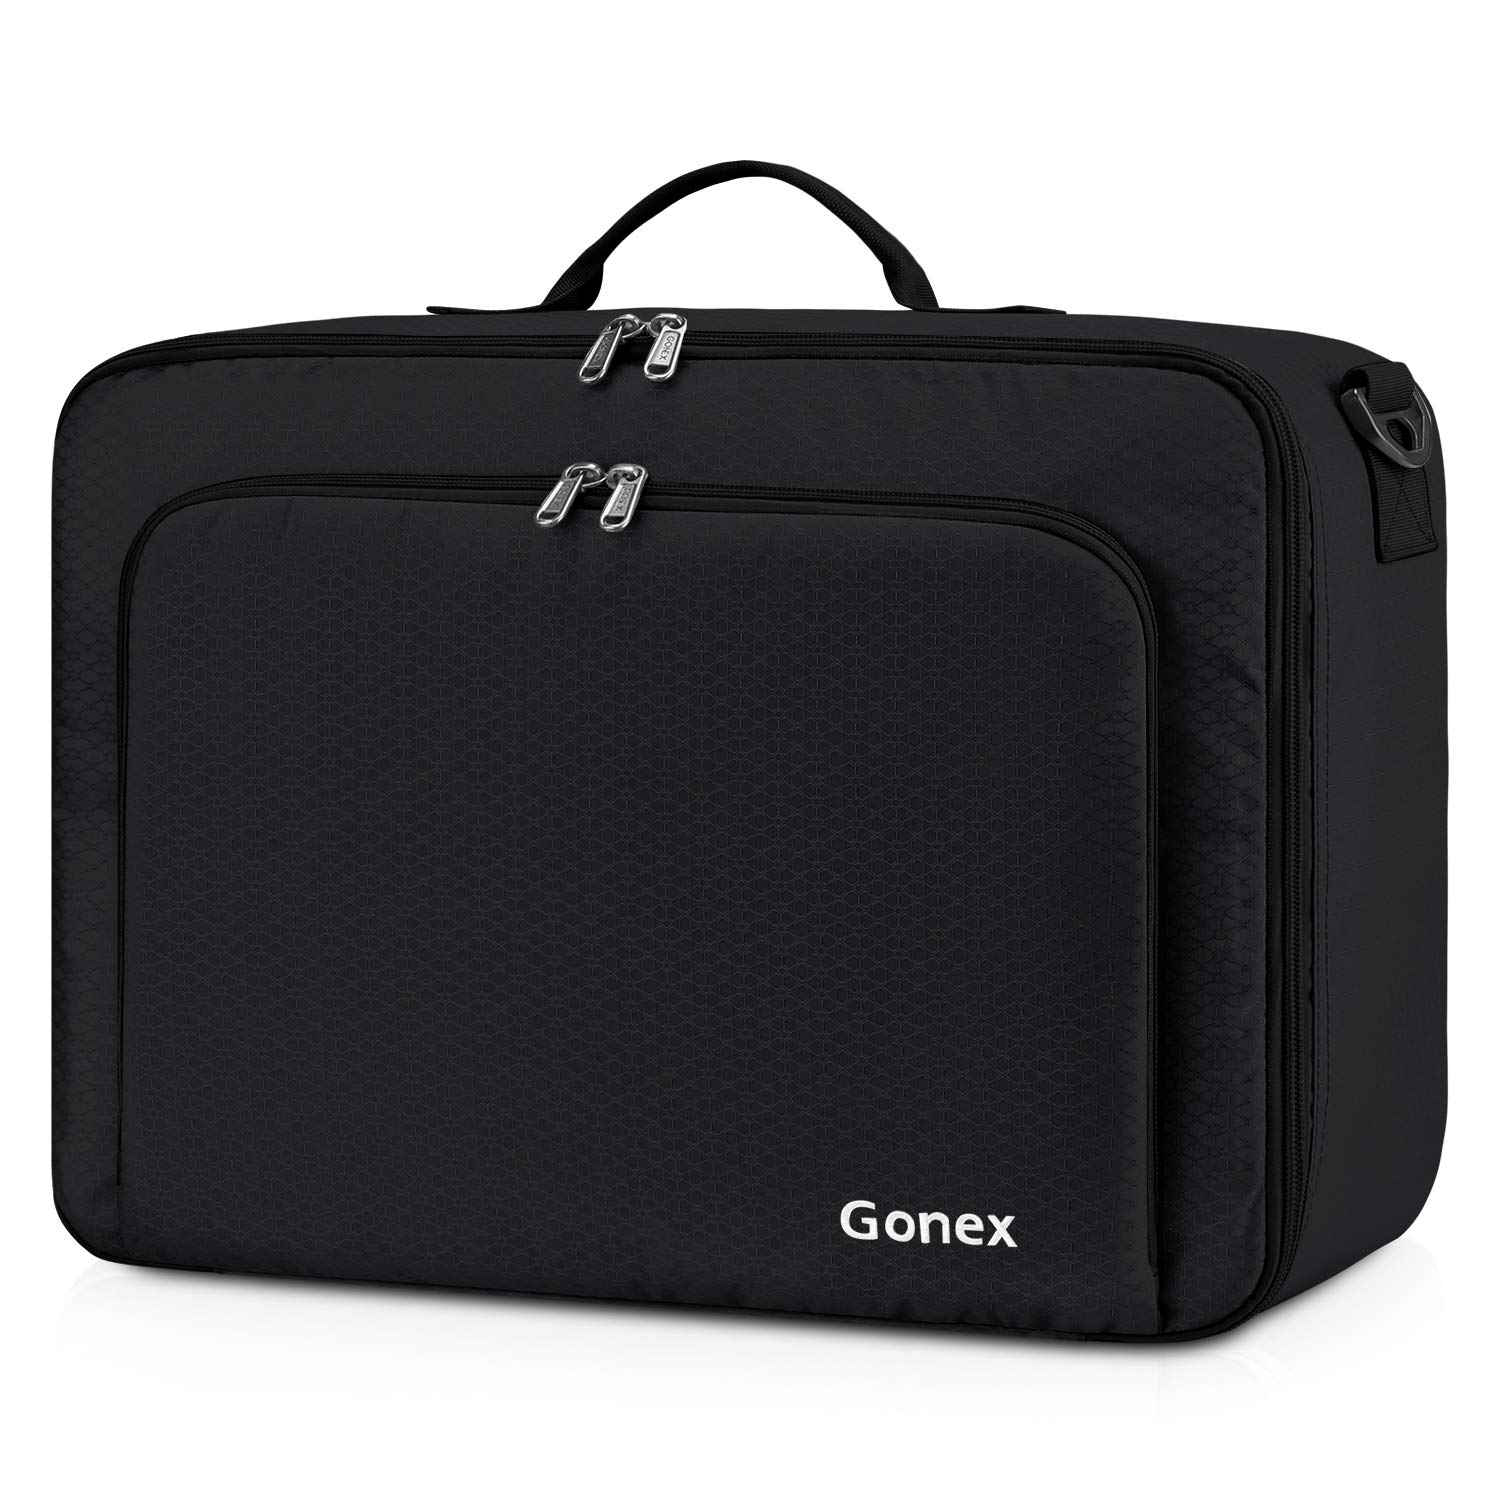 Gonex Travel Duffel Bag, Portable Carry on Luggage Personal Item Bag for Airlines, Water& Tear-Resistant 20L Black by Gonex